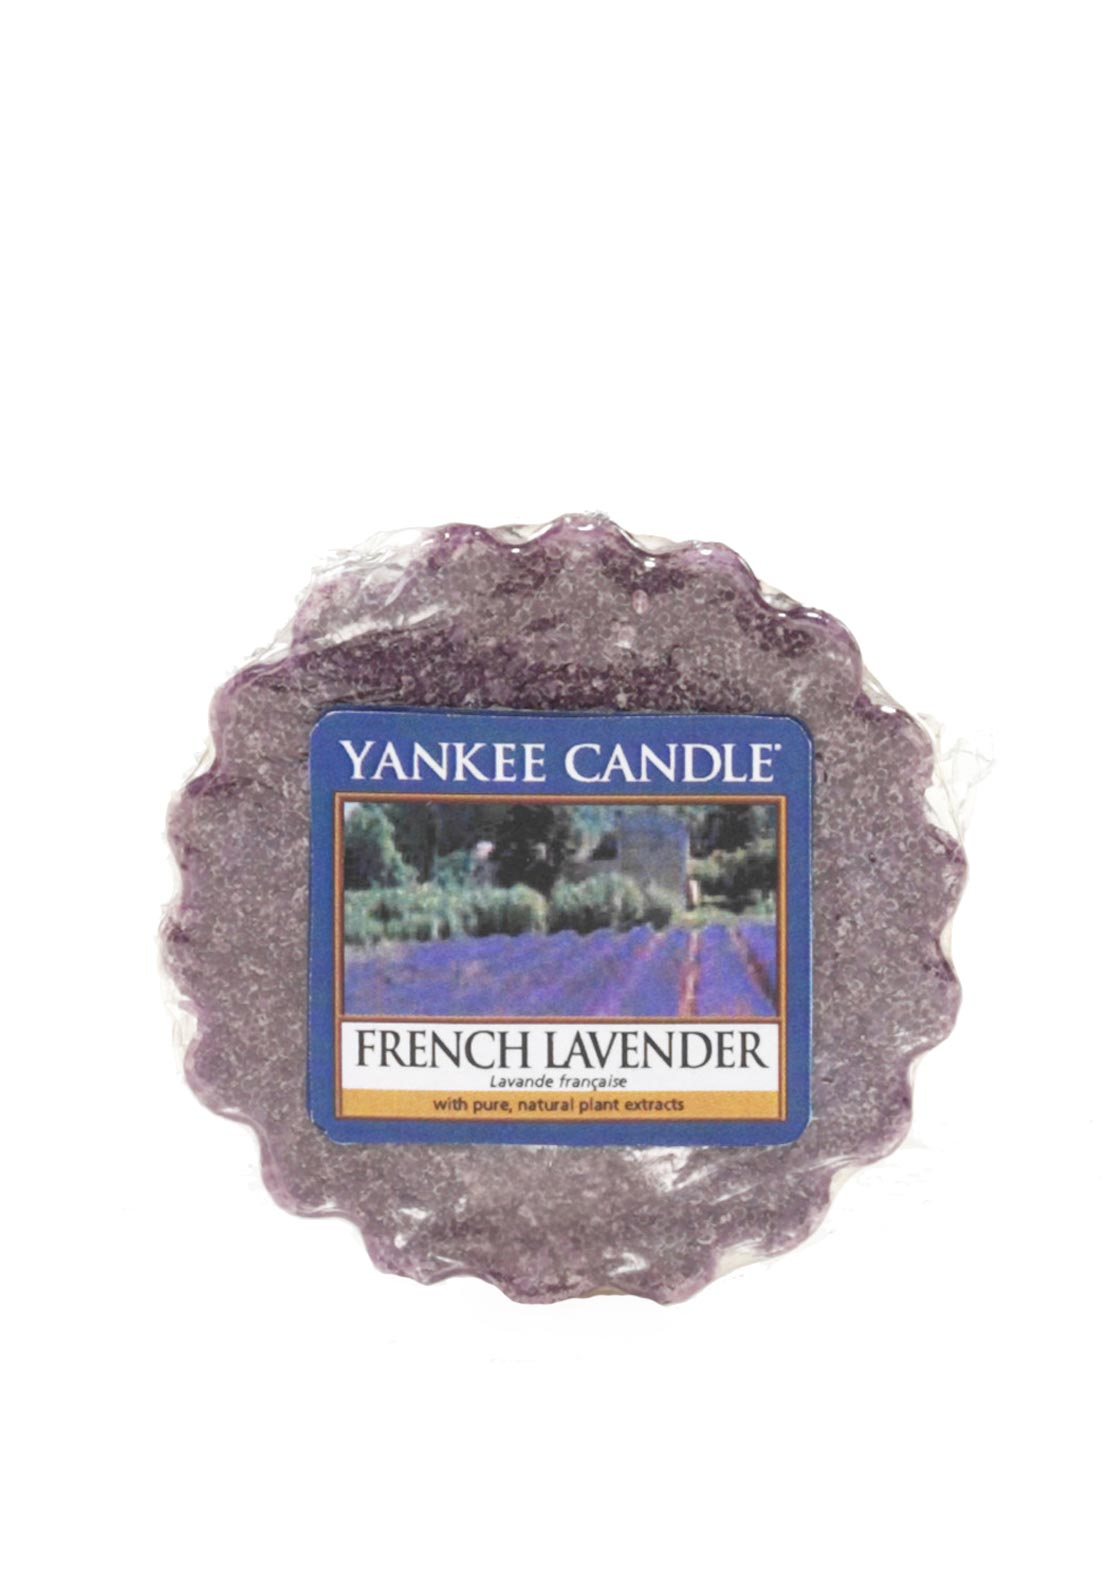 Yankee Candle Wax Tart, French Lavender